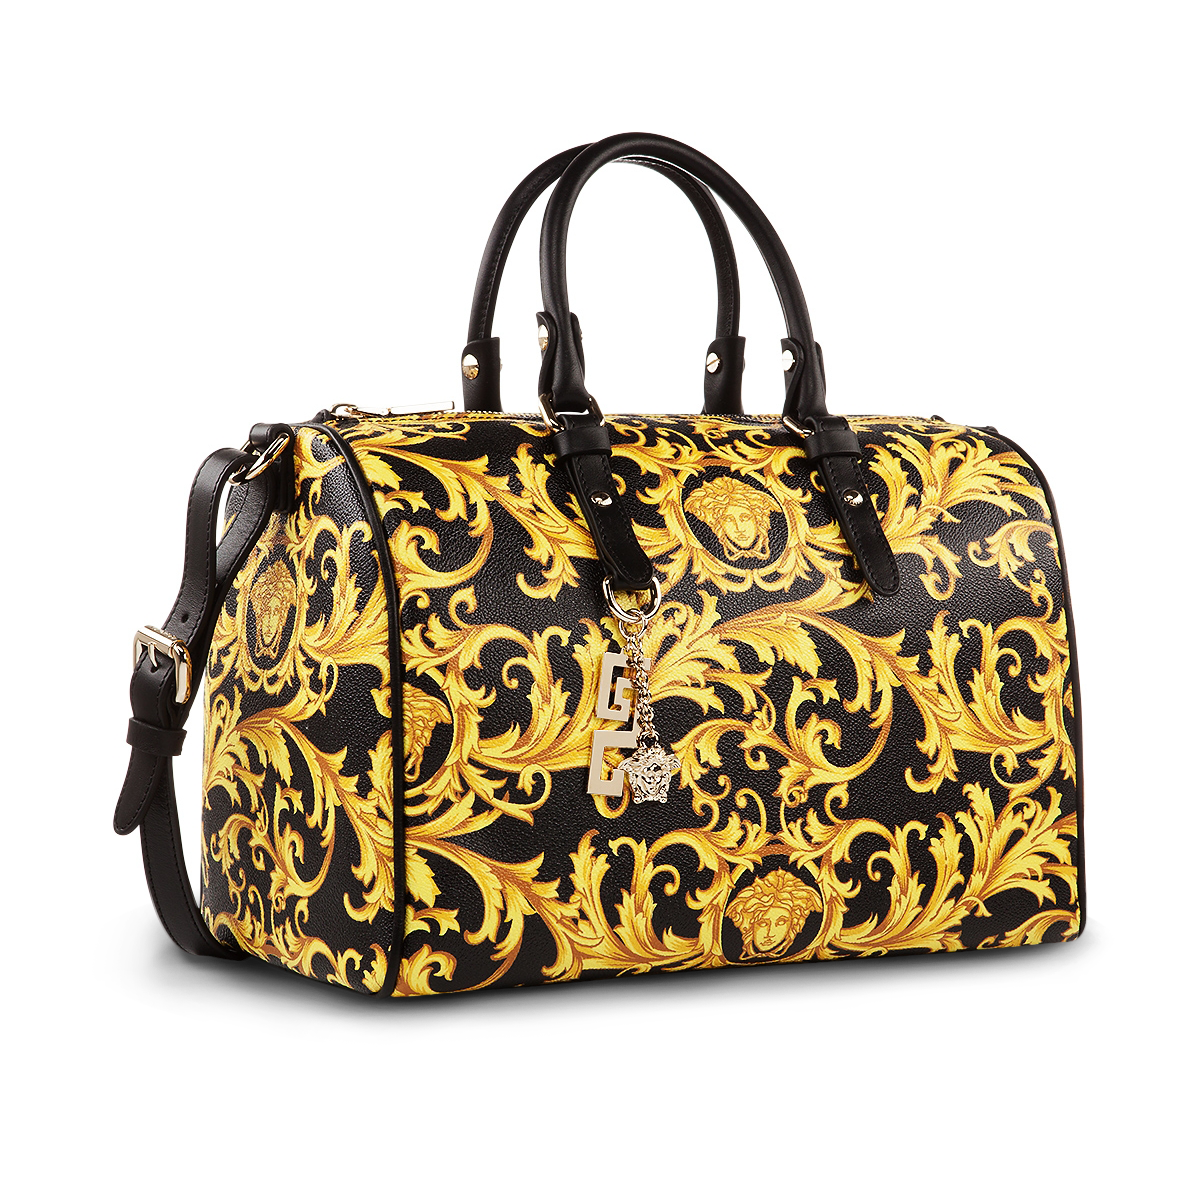 ec9fb76650 Luxurious everyday staple. #Versace Medusa Heritage Barocco duffle ...